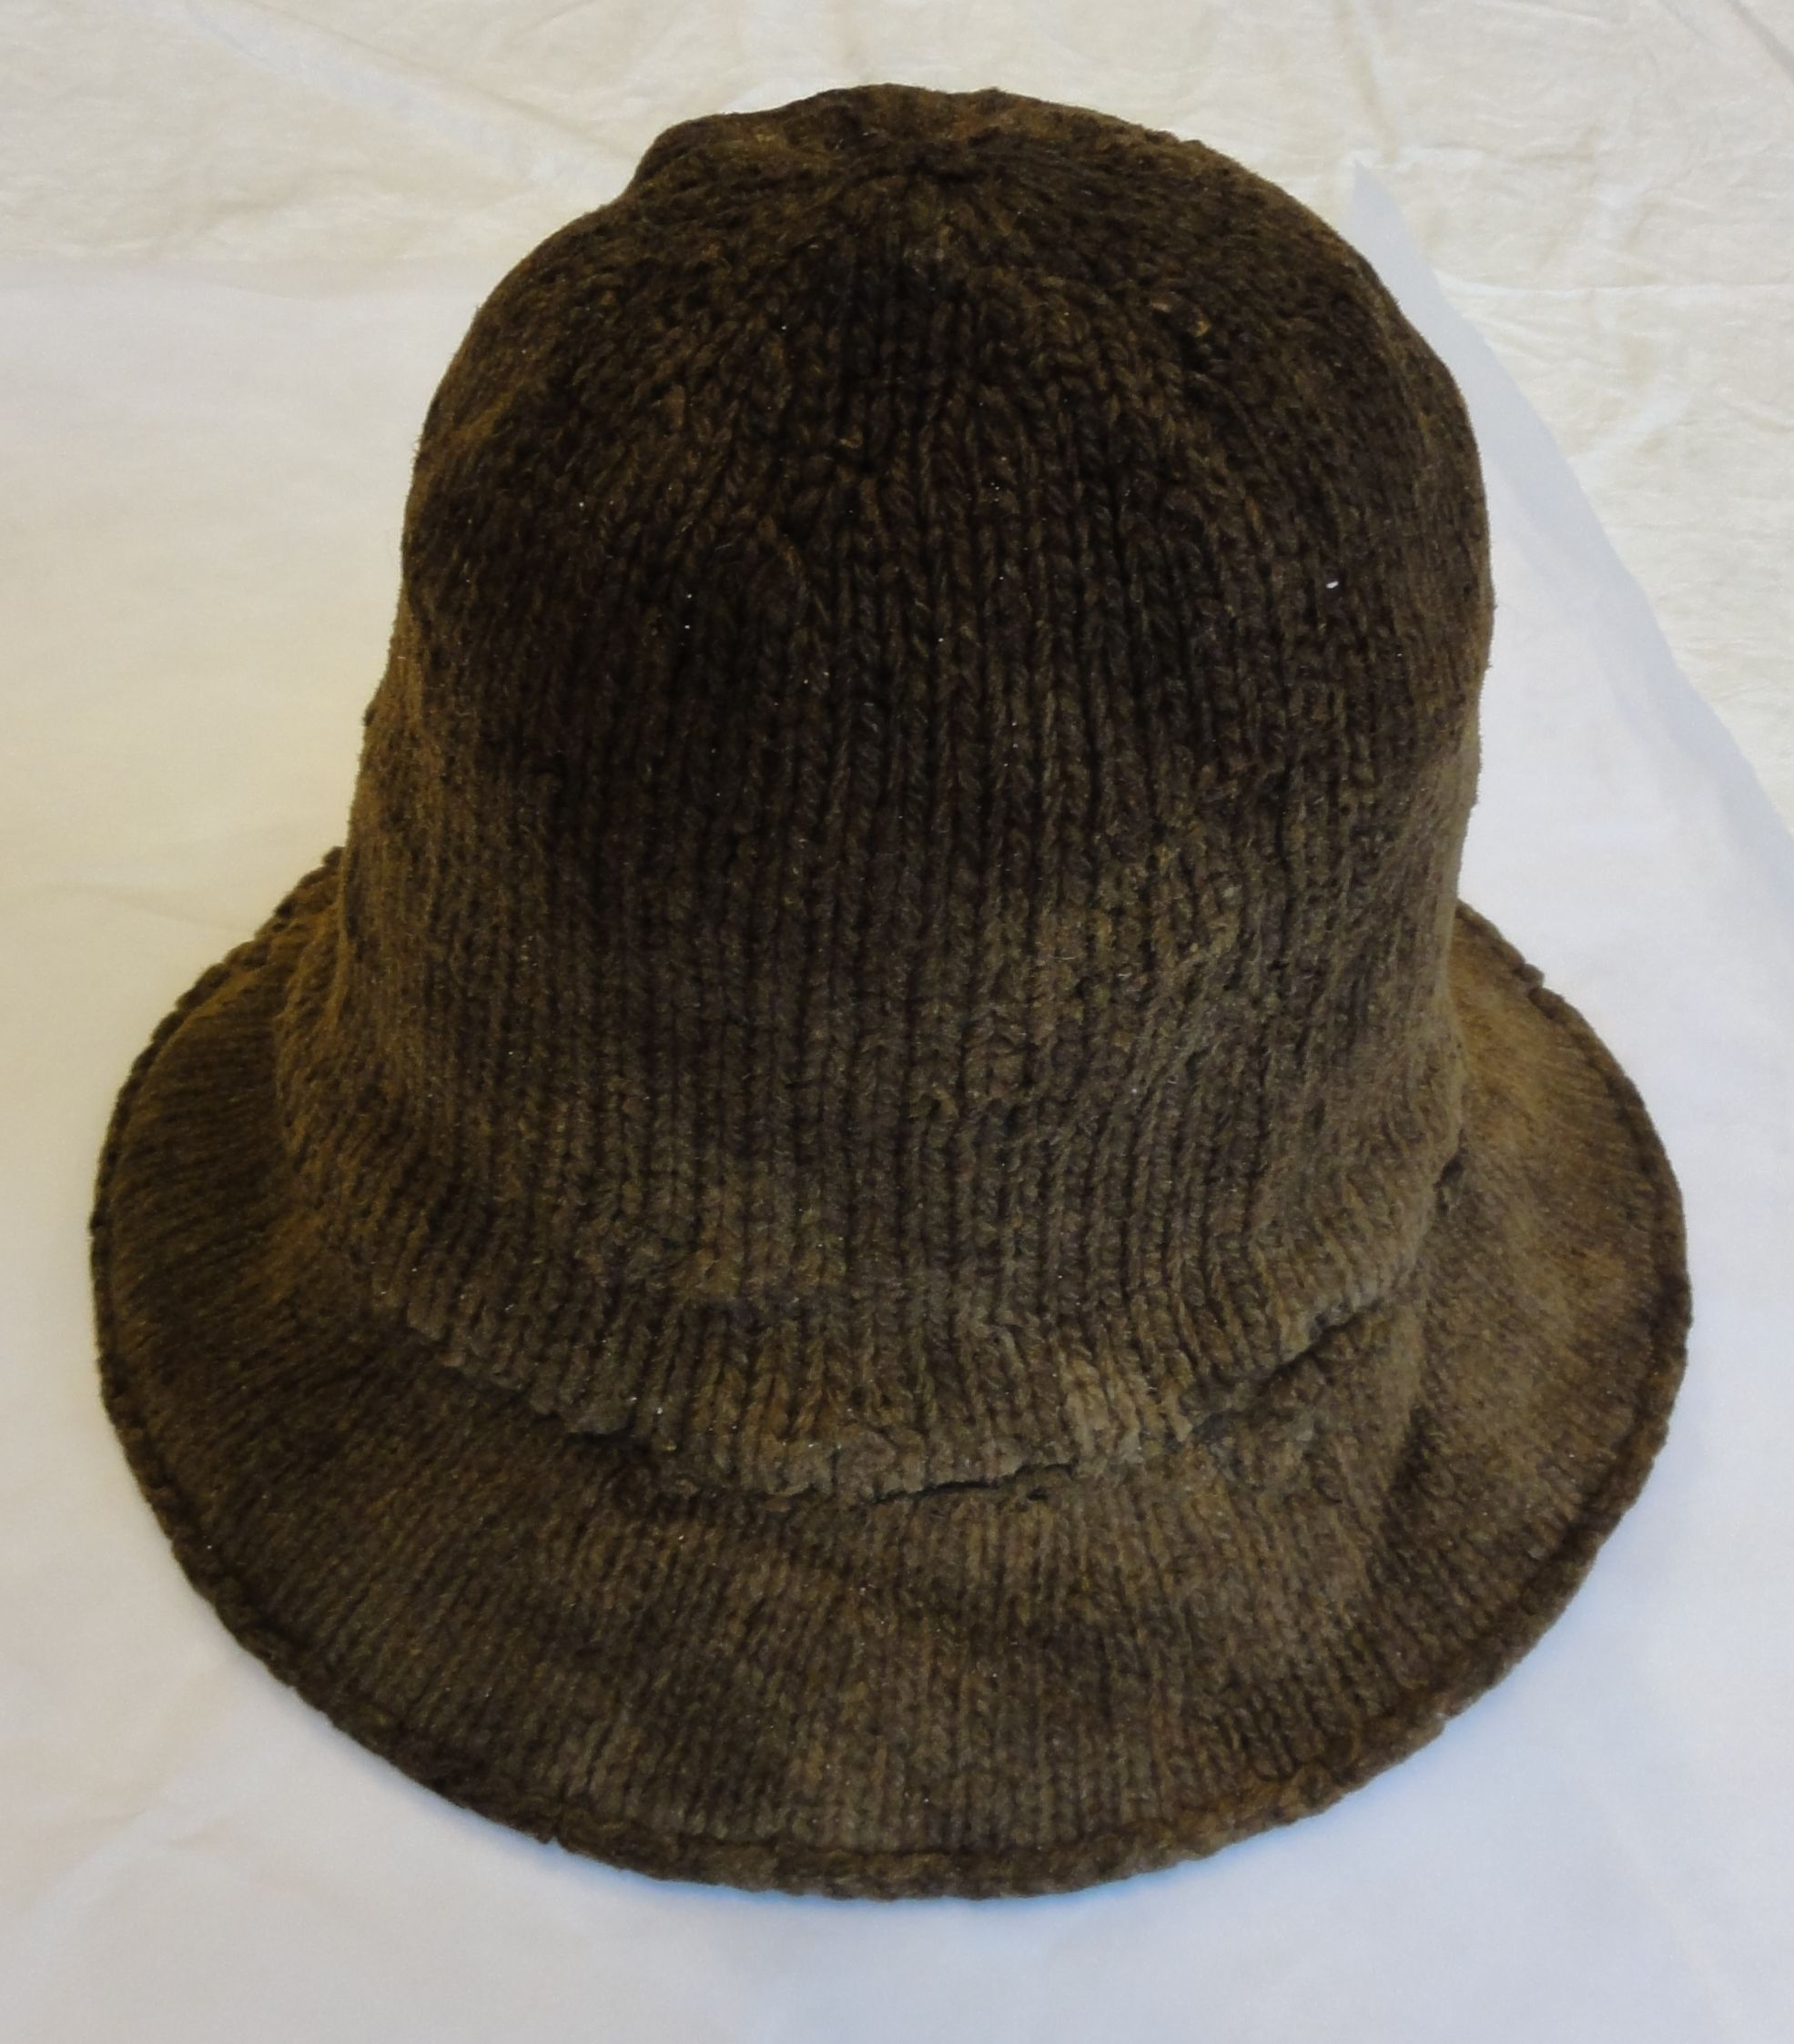 This image shows the unique bind-off edge at the outer perimeter of the brim. It is not a purl-ridge turned edge as so many reenactors use. Also, it is clear that the brim and the crown are knit in two different gauges.